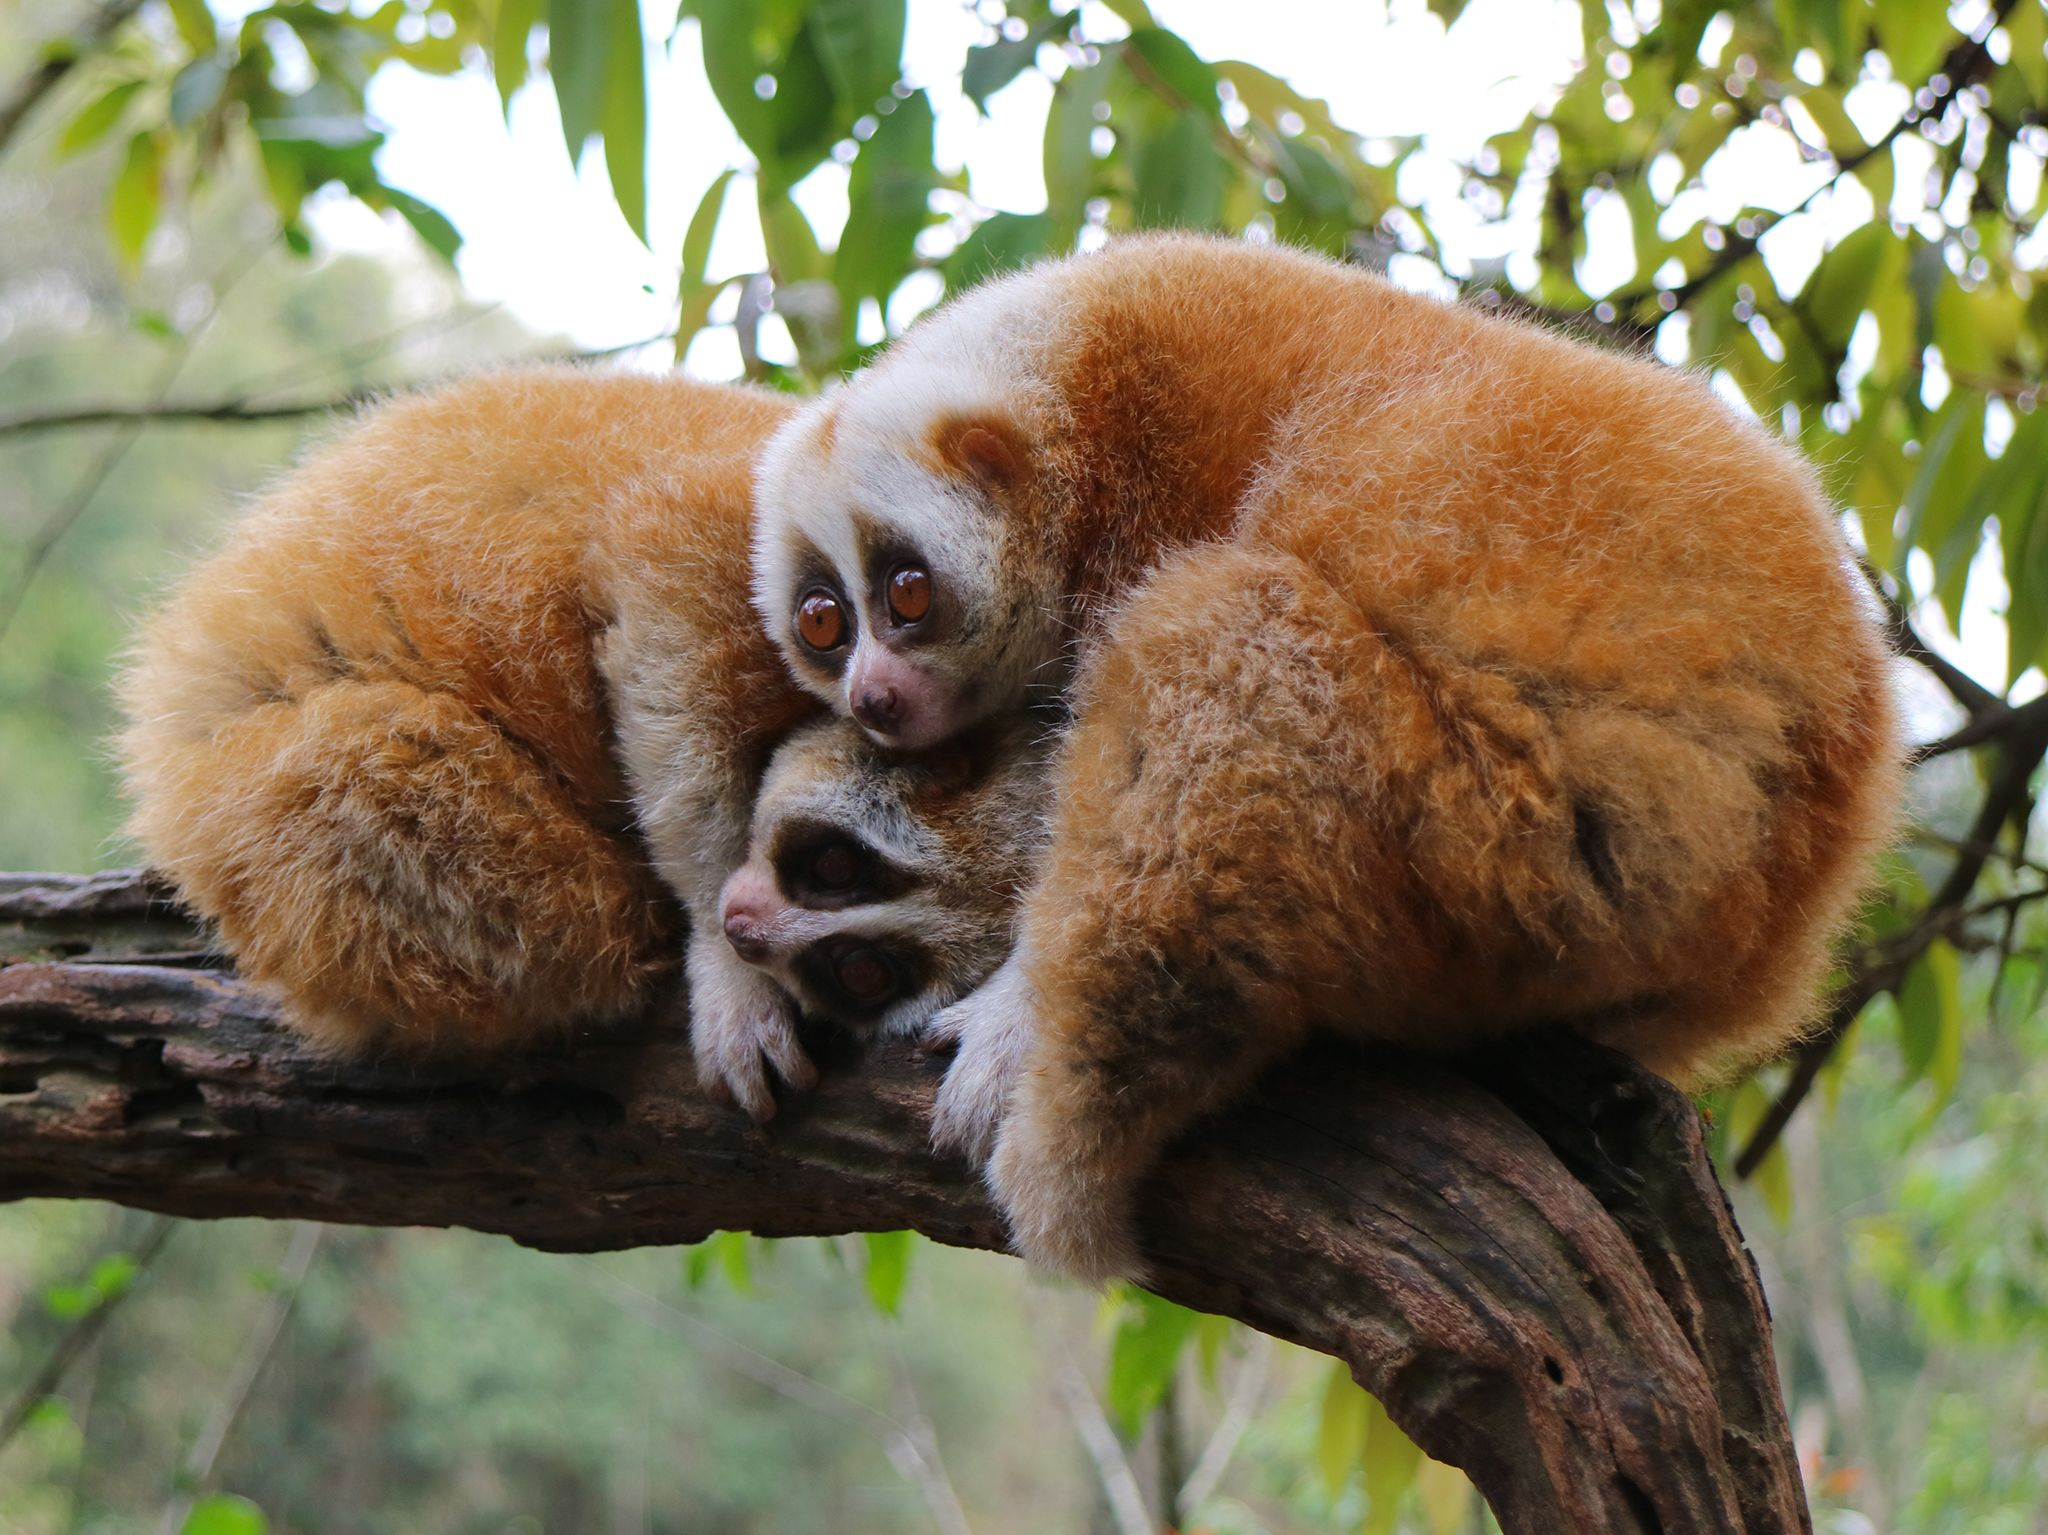 Pu'er Sun River National Park, Yunnan:  2 Slow lorises waking up at dusk.  Lorises are the only... [Photo of the day - June 2020]